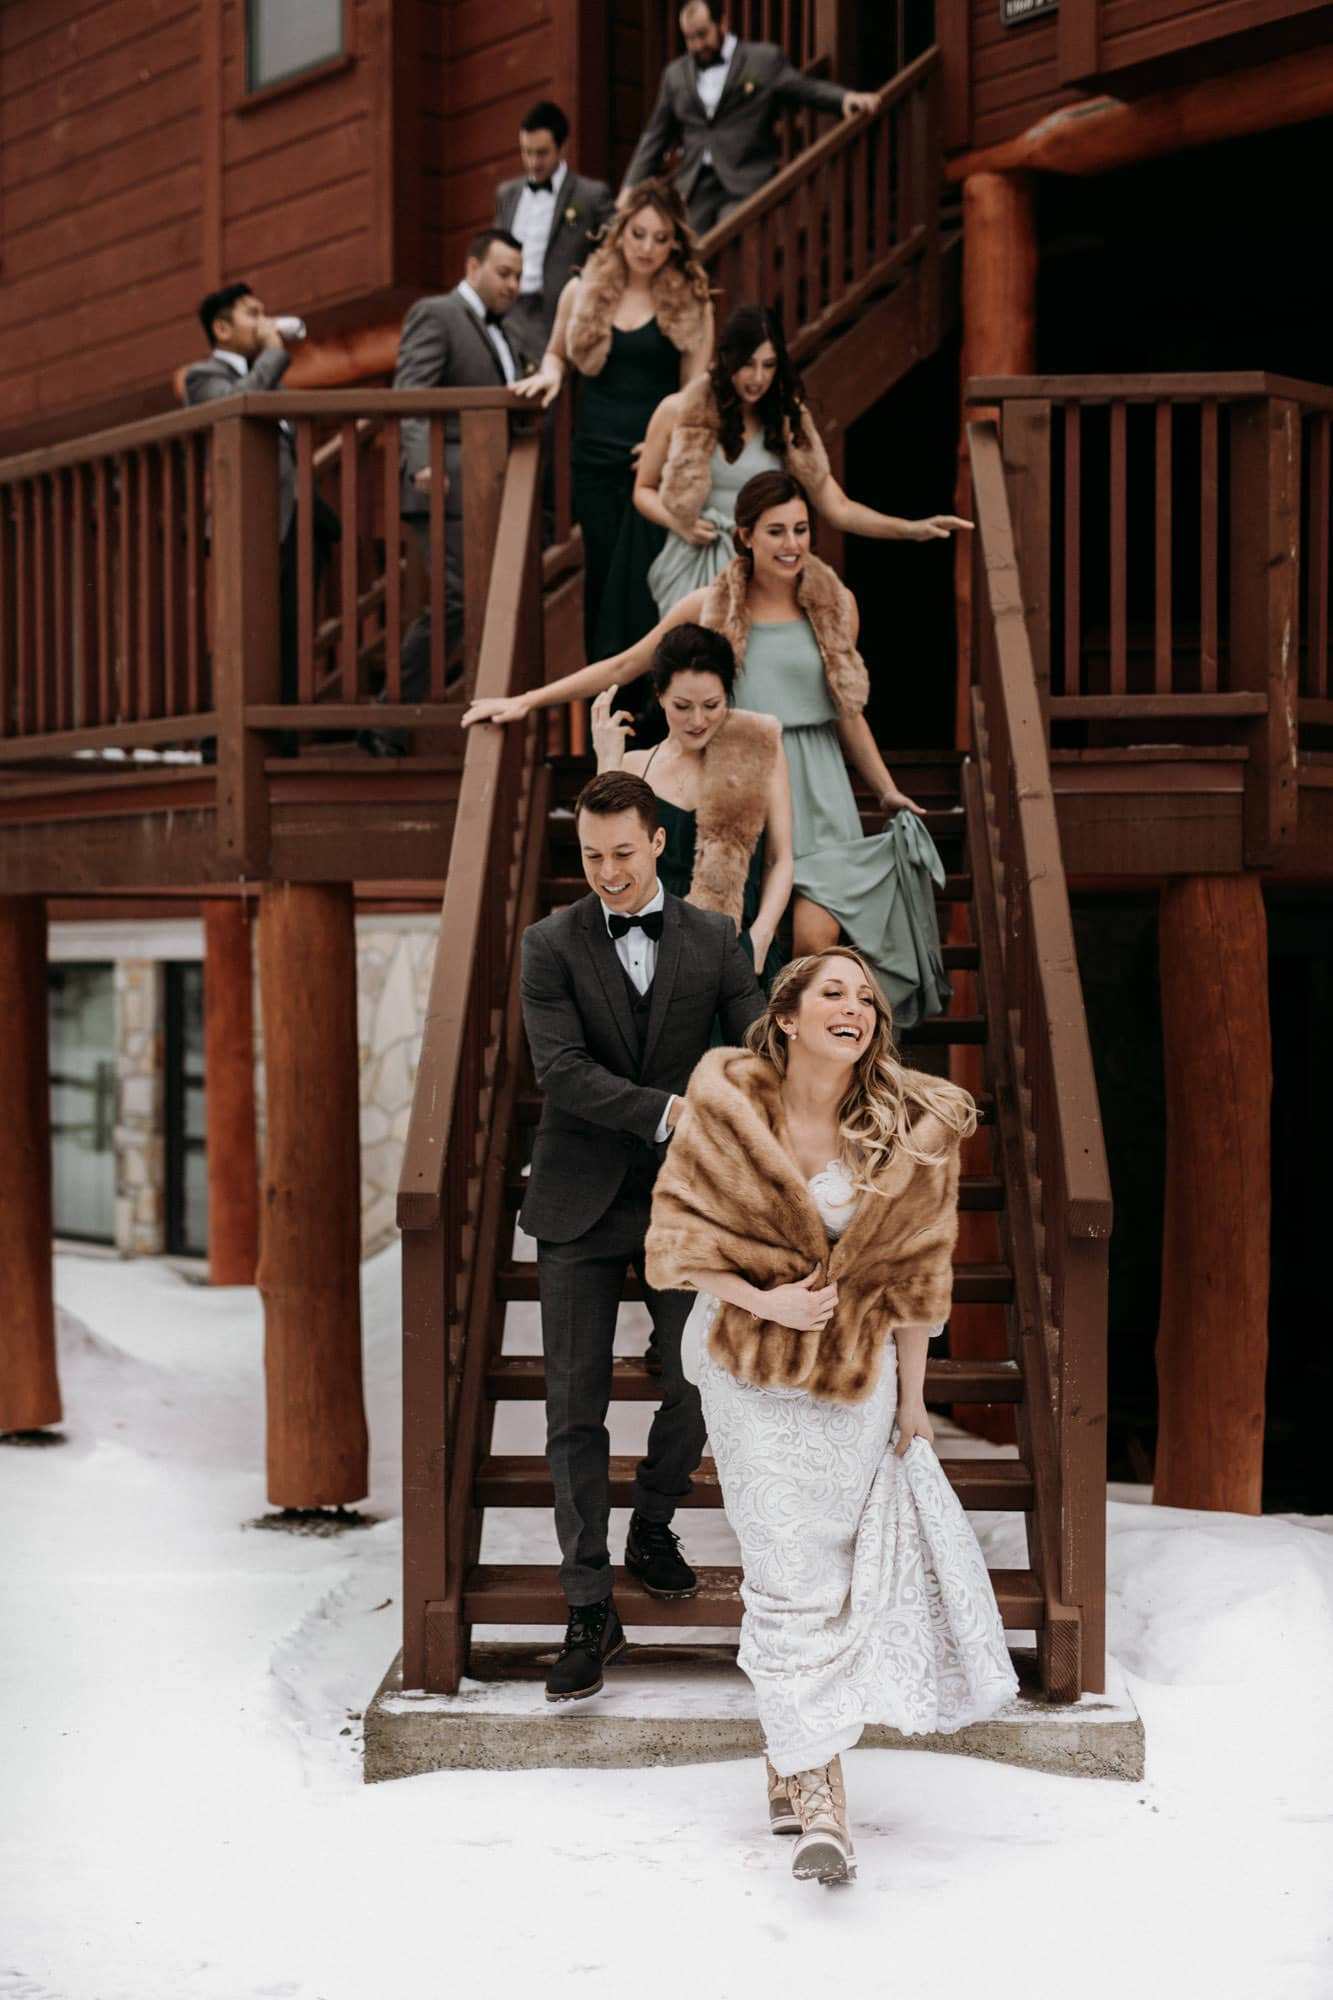 bridal party stairs wooded cabin winter wedding